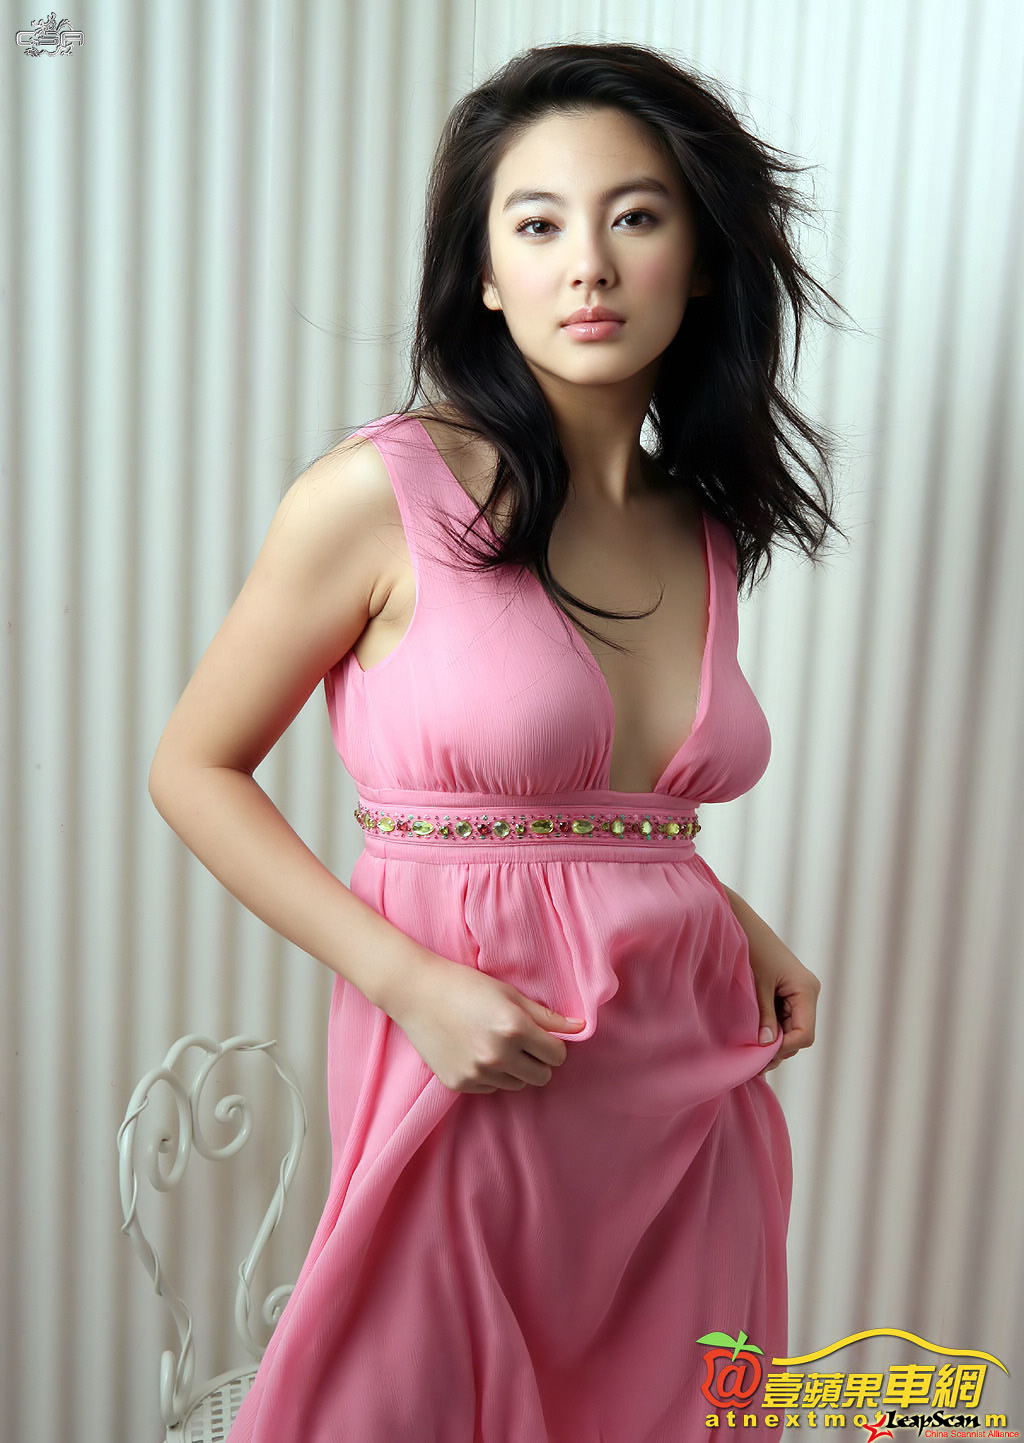 stunning kitty zhang yuqi photo 01